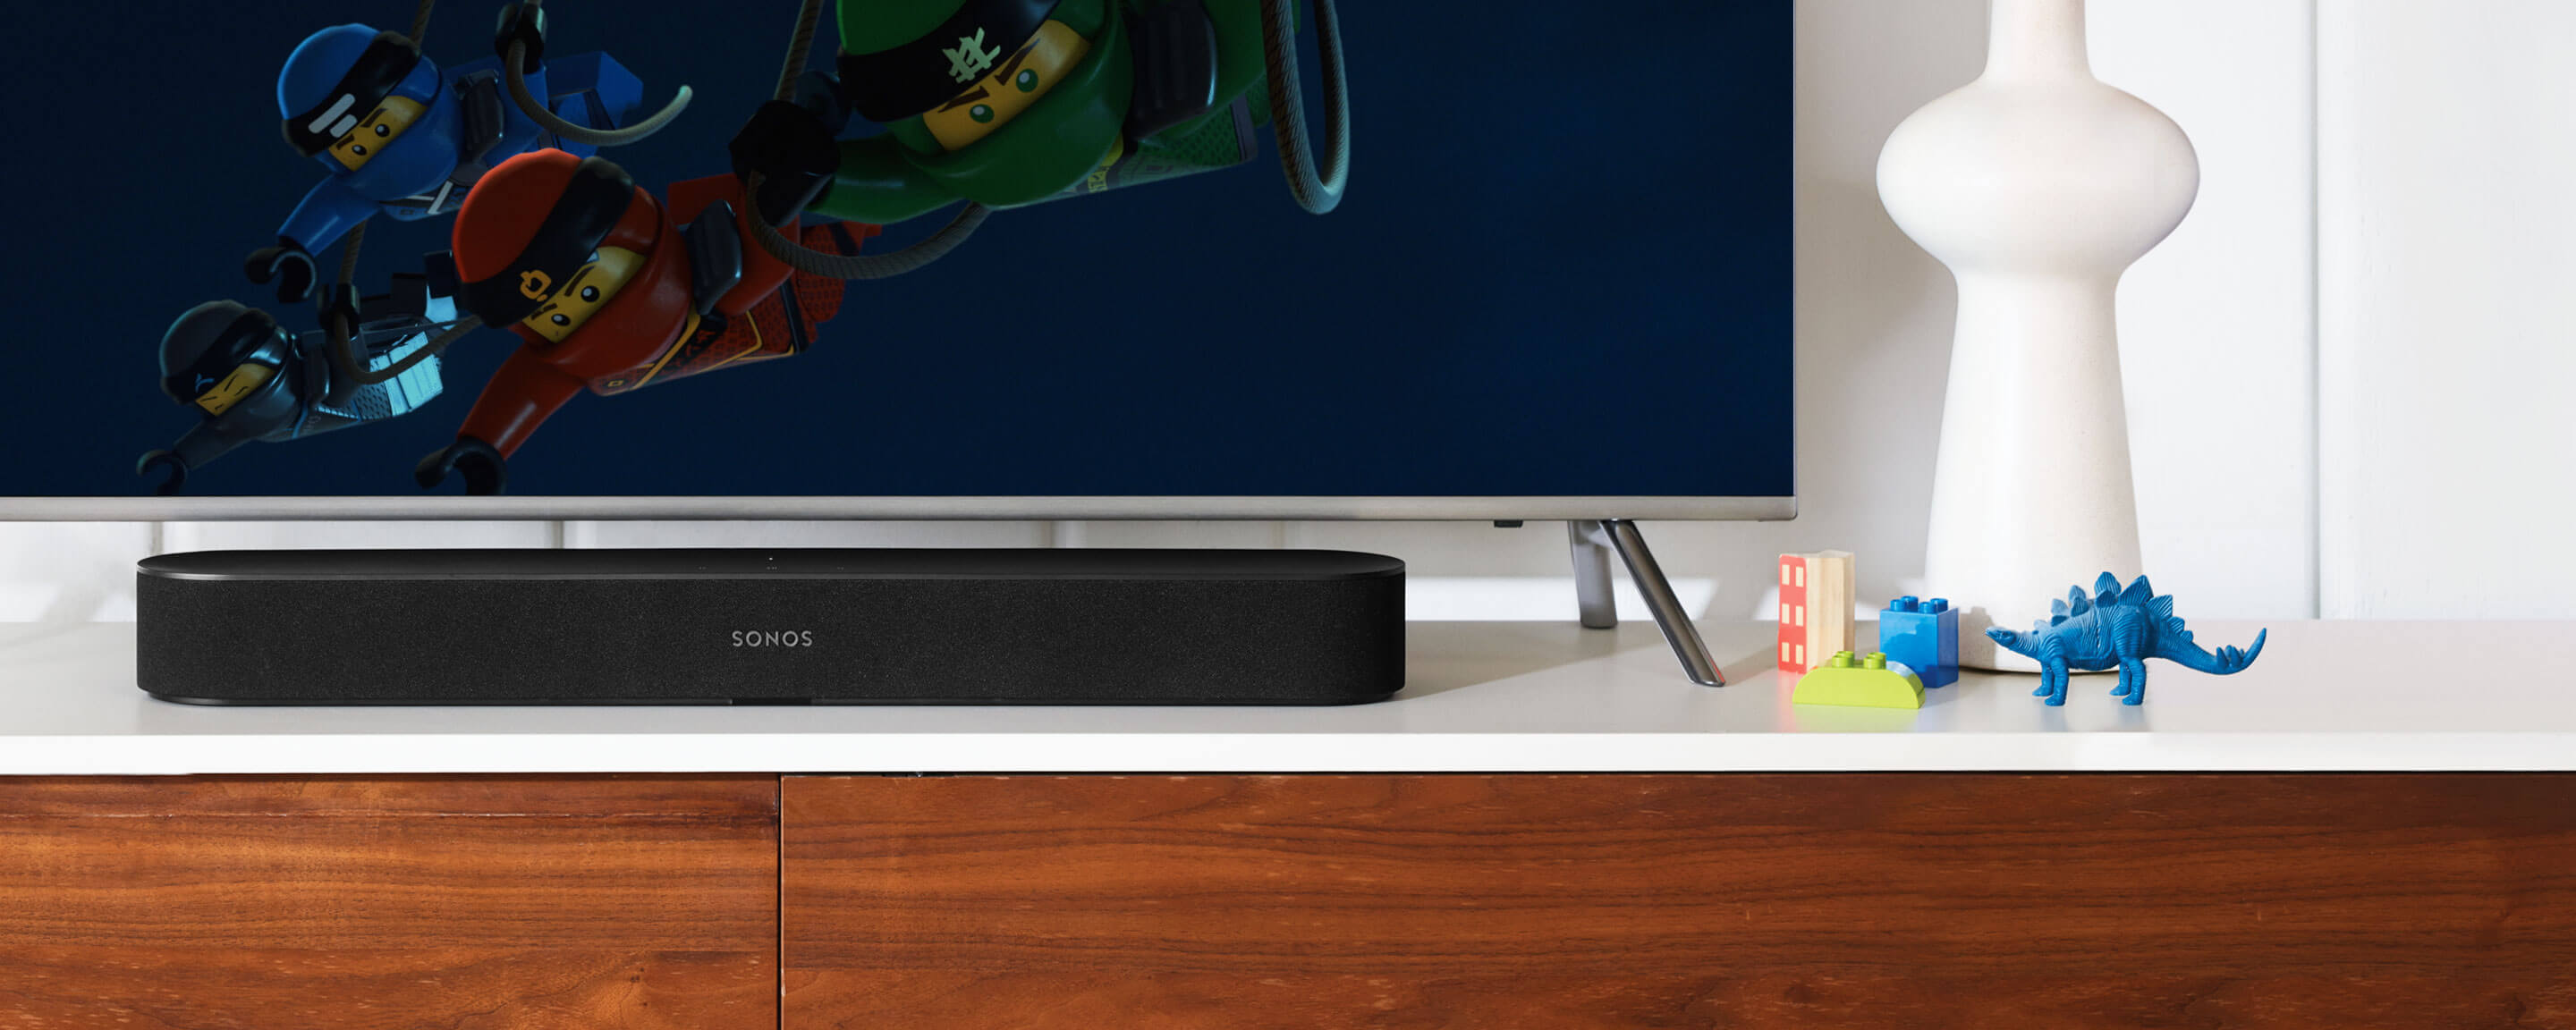 Sonos Beam is a premium home theater speaker with choice of multiple digital assistants